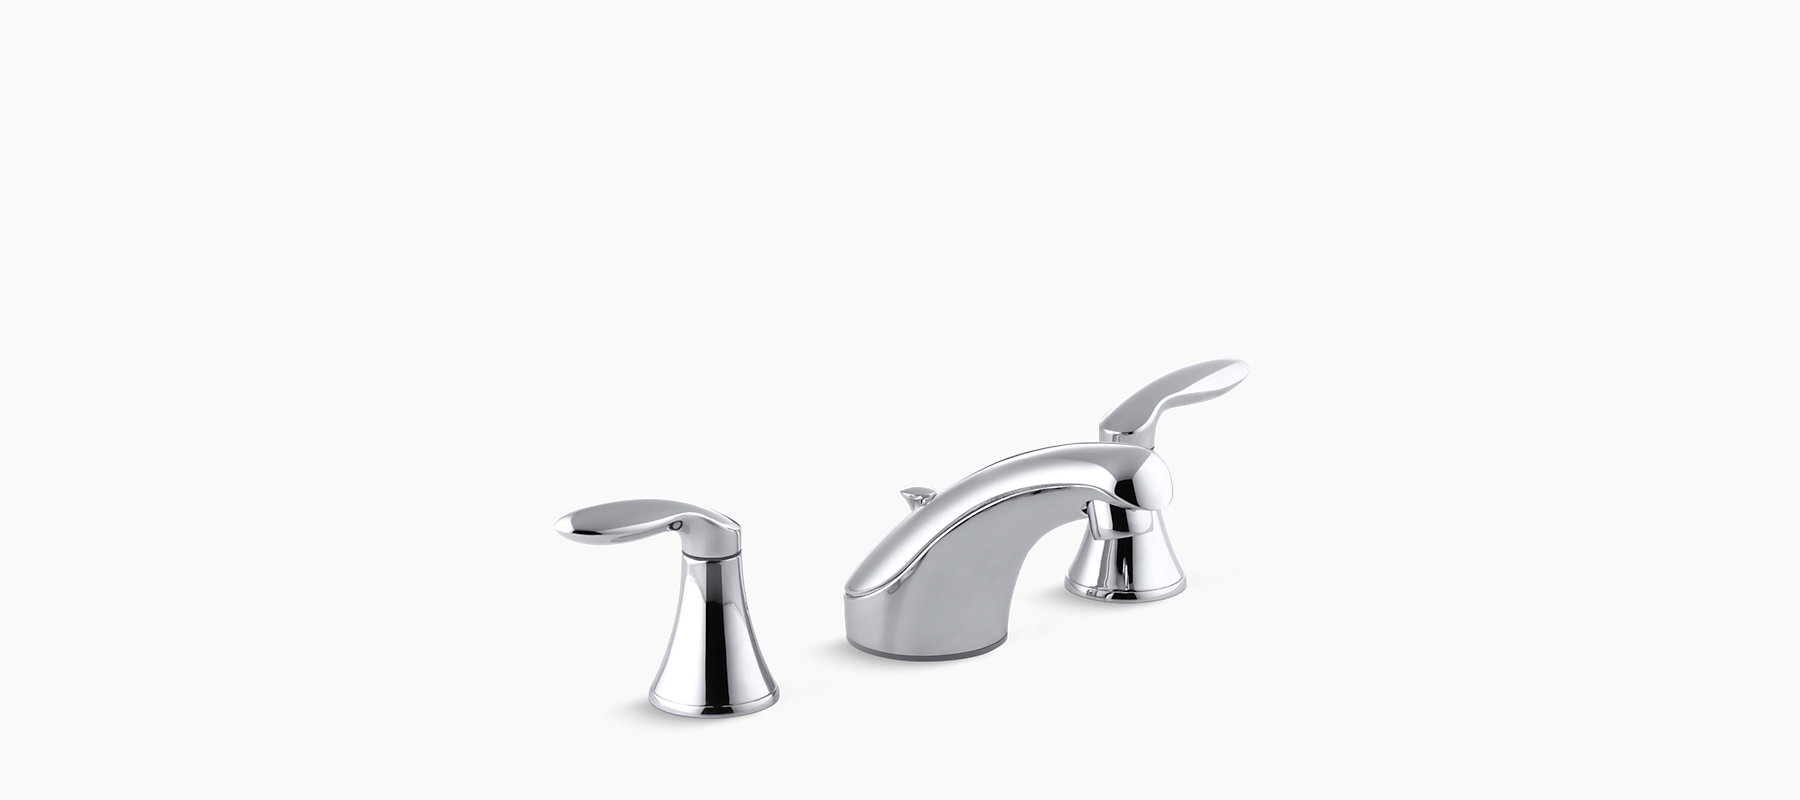 Coralais Widespread Bathroom Sink Faucet K 15261 4 Kohler